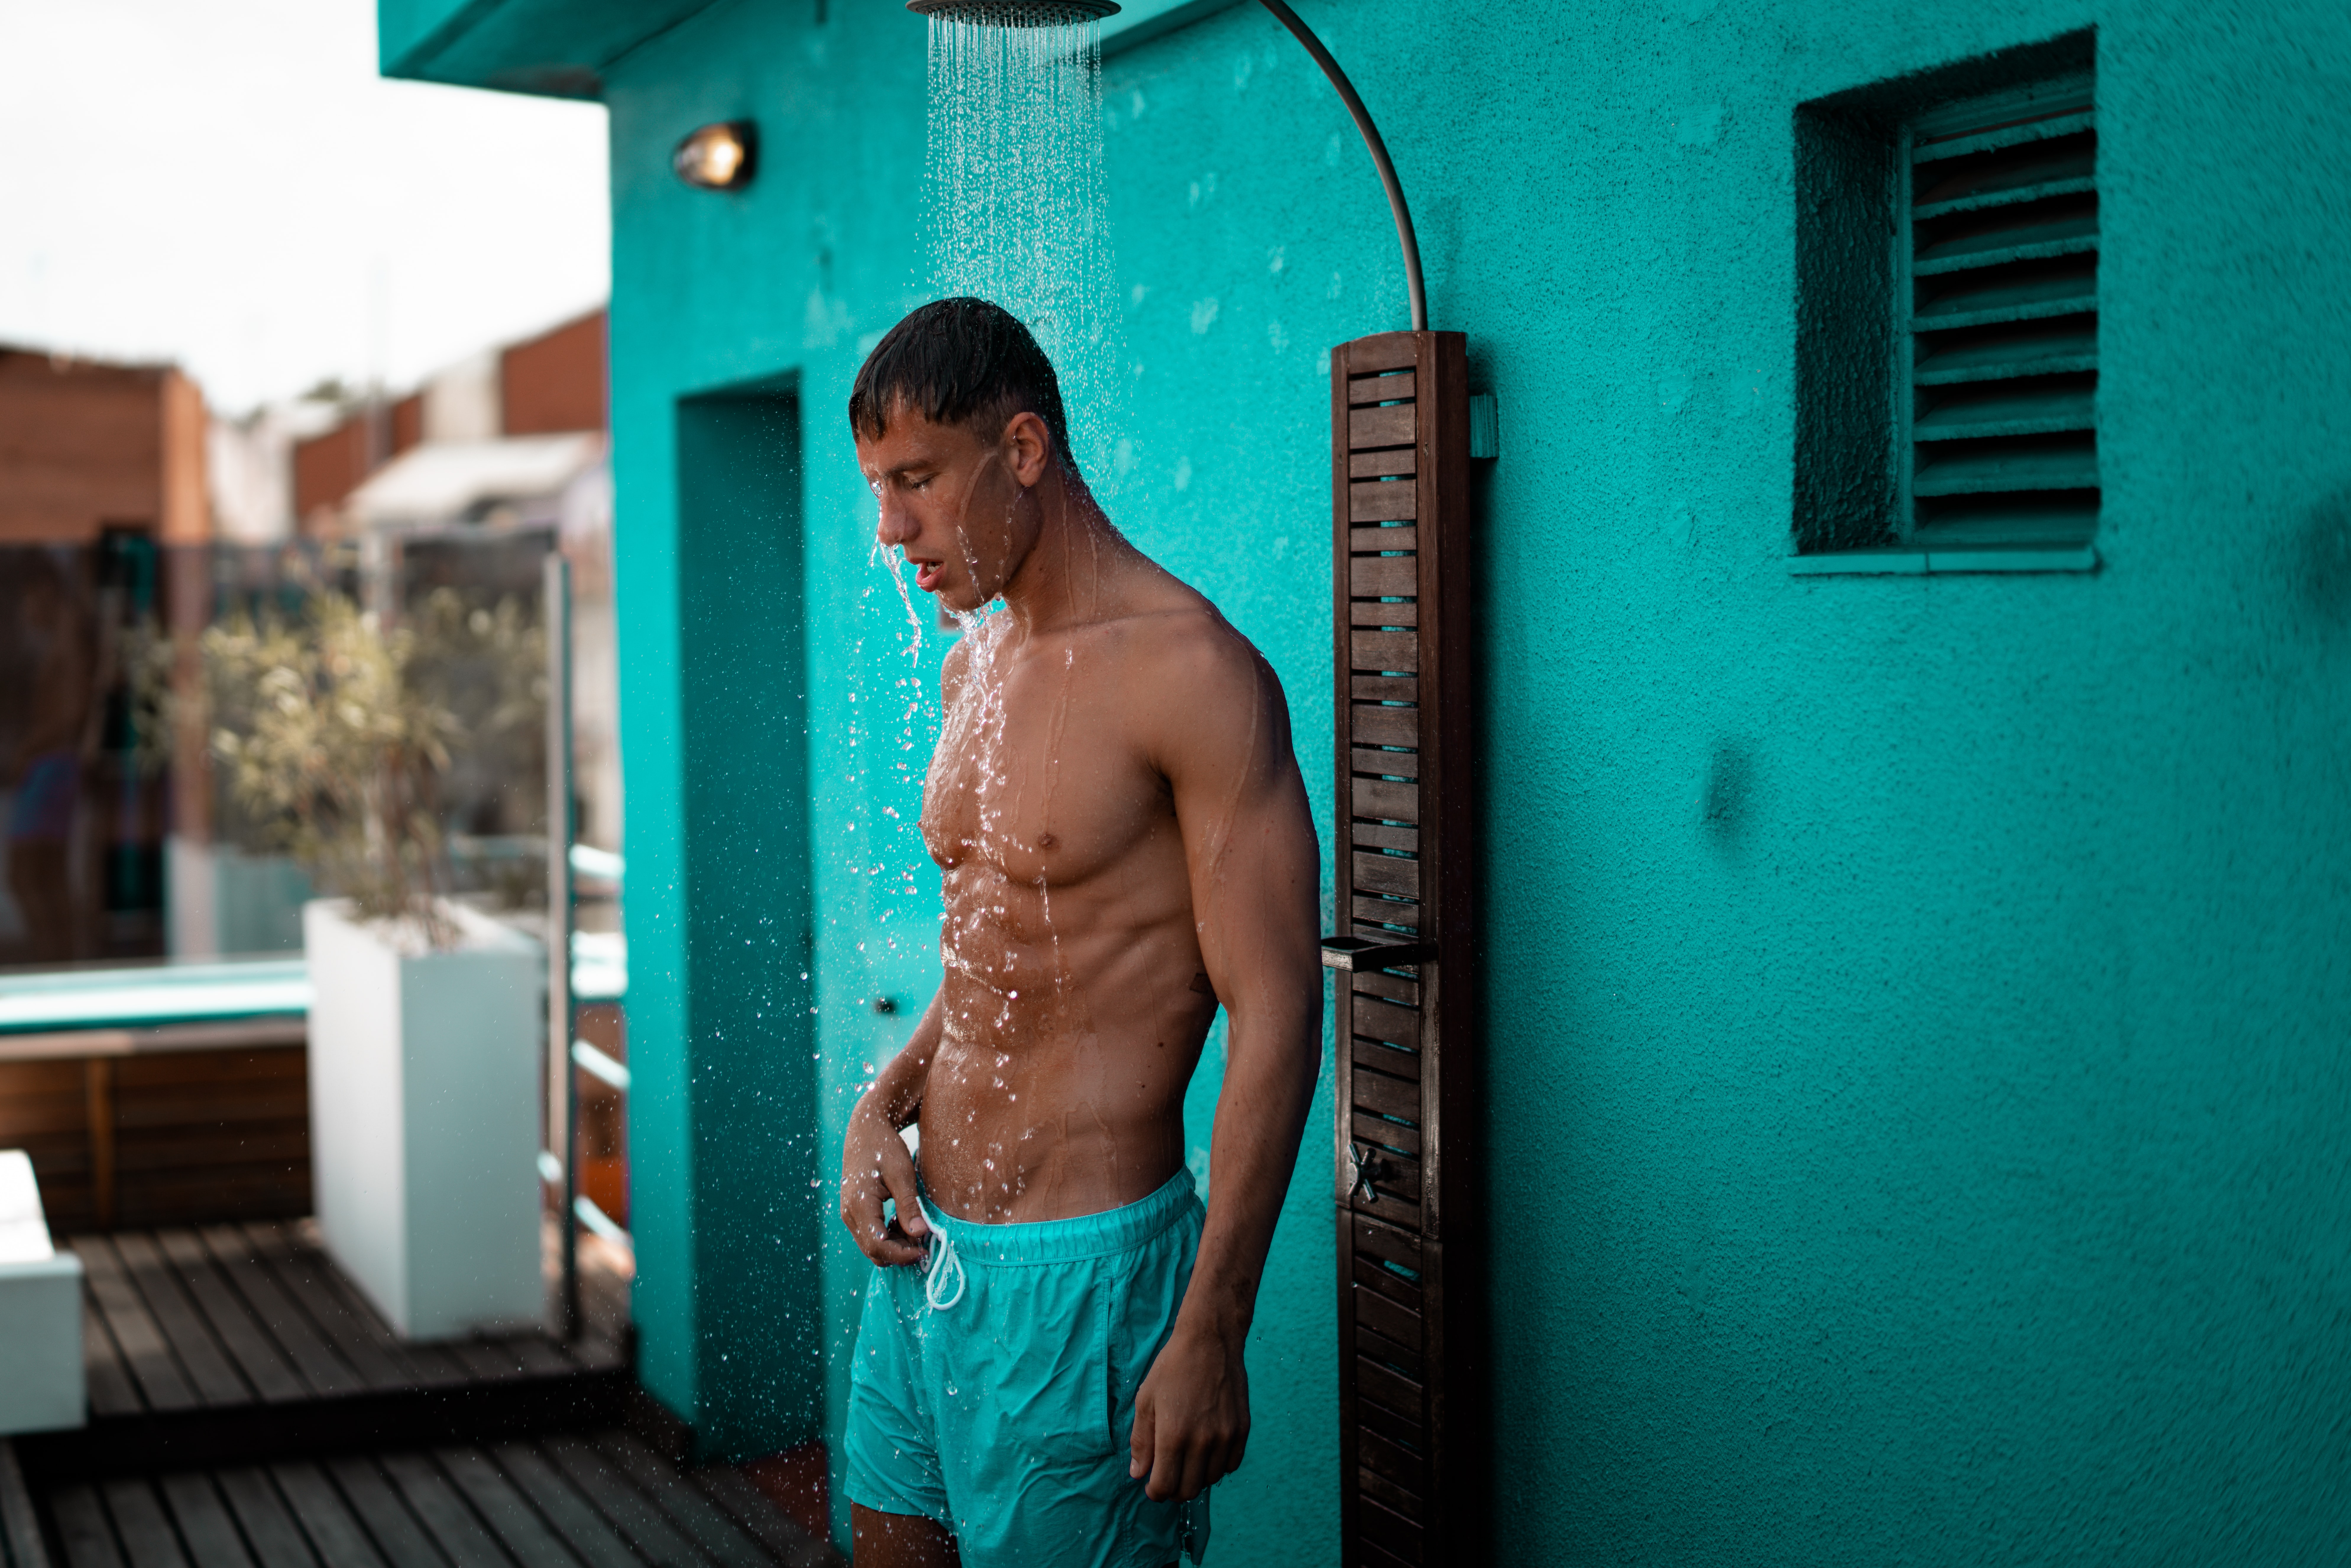 man in teal drawstring shorts taking a shower